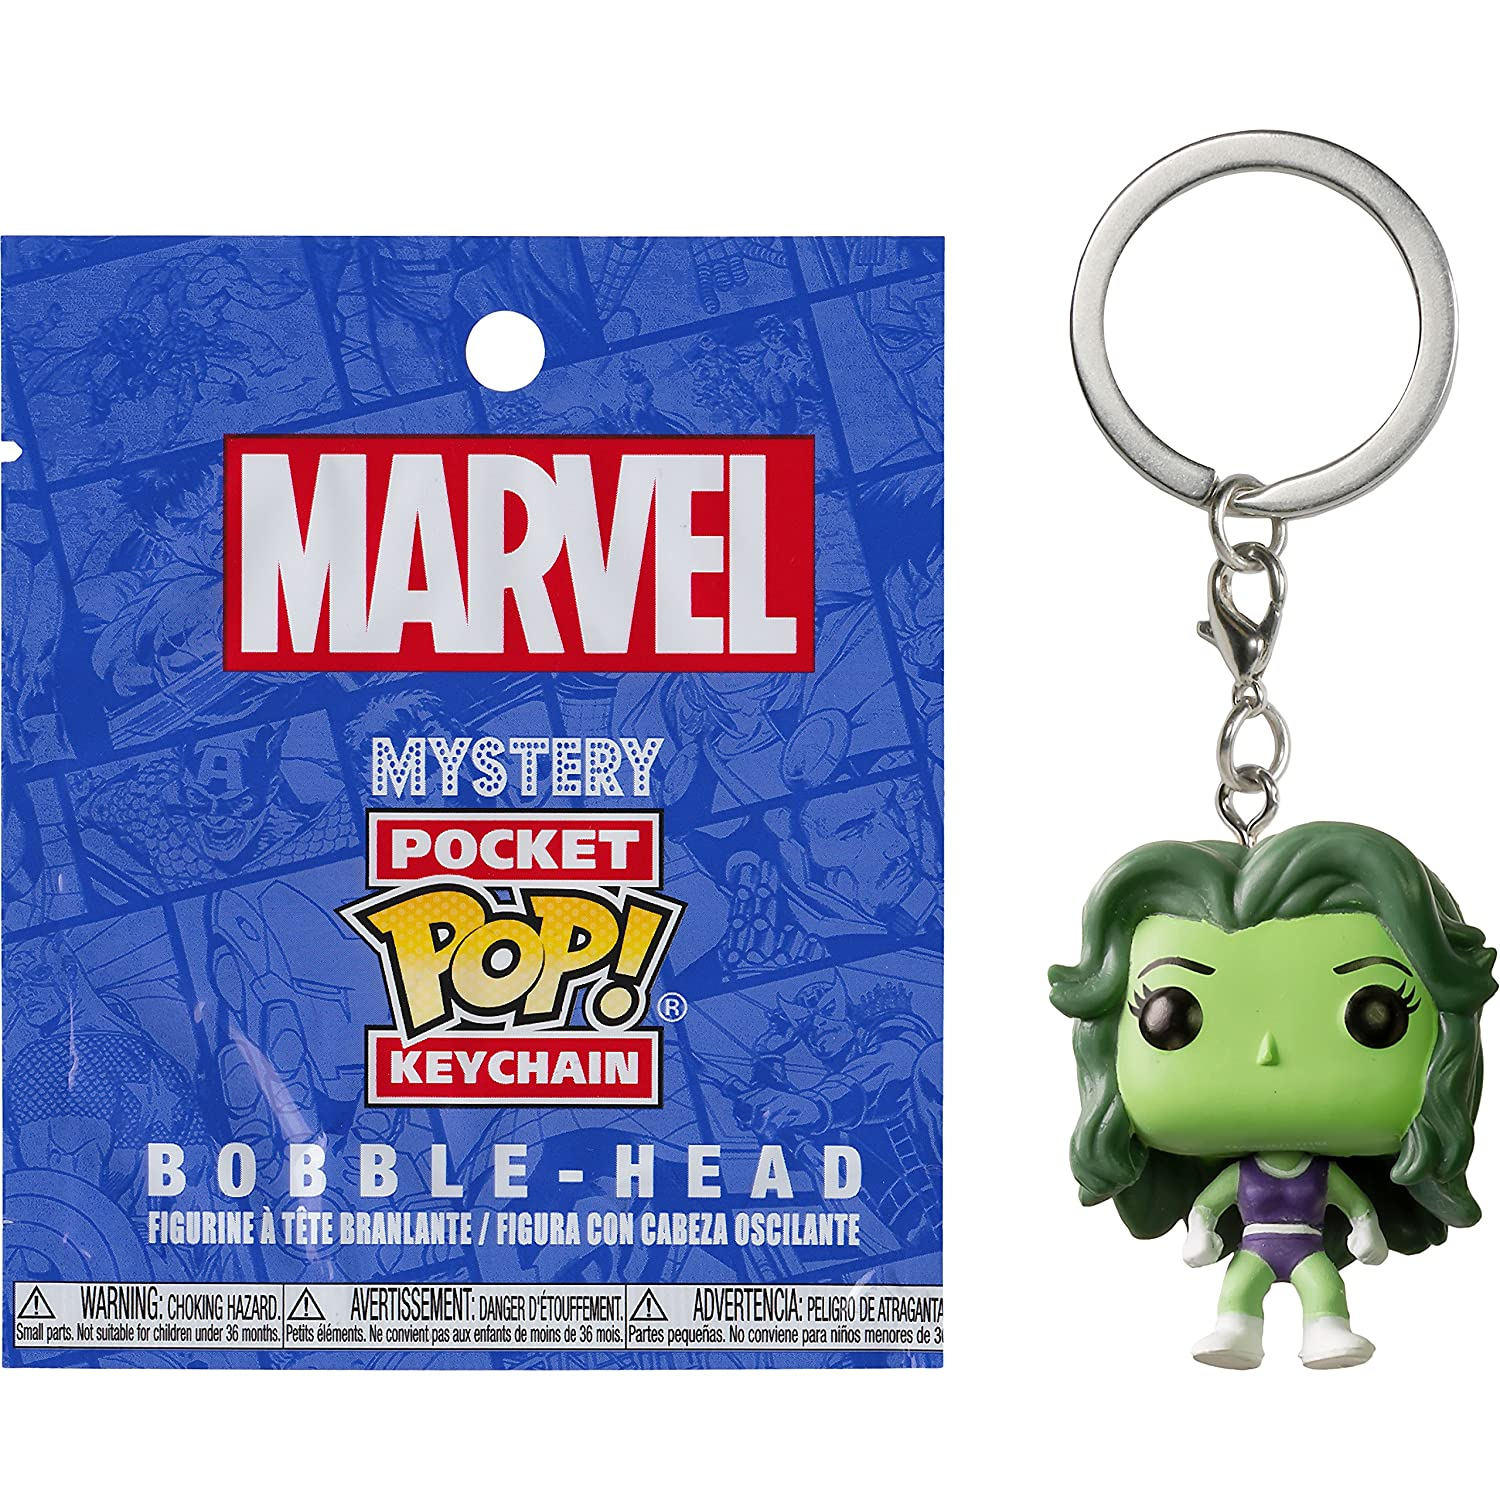 Amazon.com: Funko She-Hulk Mystery Pocket POP! x Marvel ...